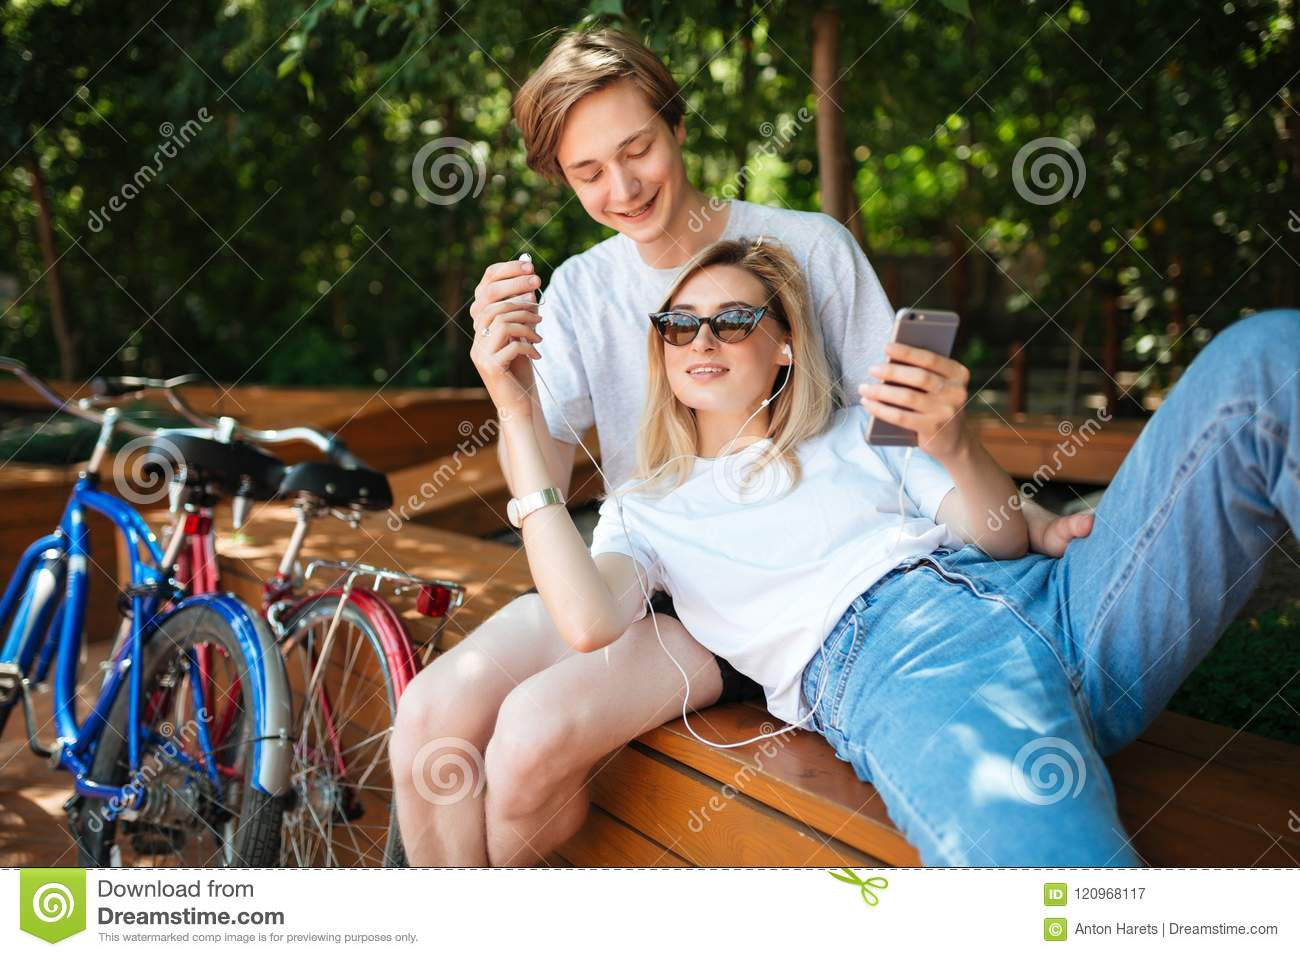 Young couple having fun while spending time in park with two bicycles nearby. Boy sitting on bench in park happily